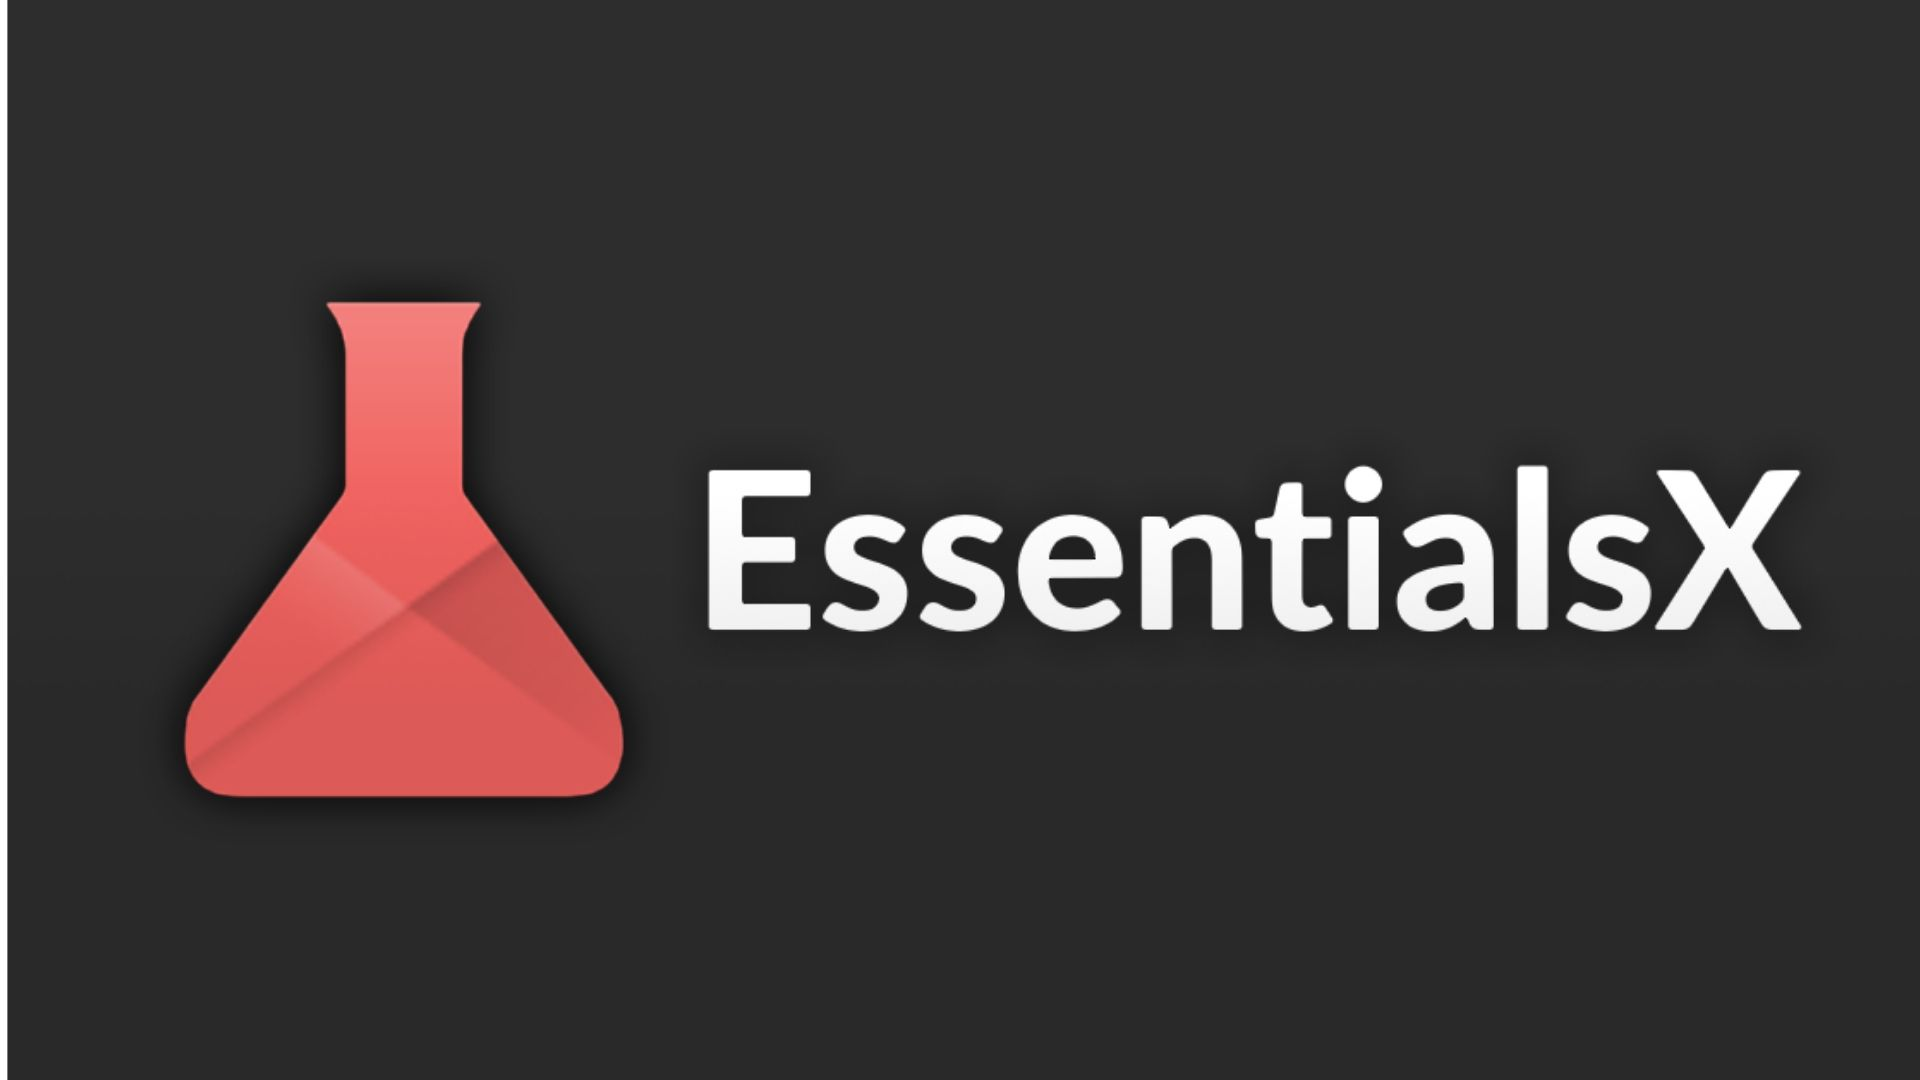 Essentials Permissions: What Is EssentialsX And Why Should You Use It?